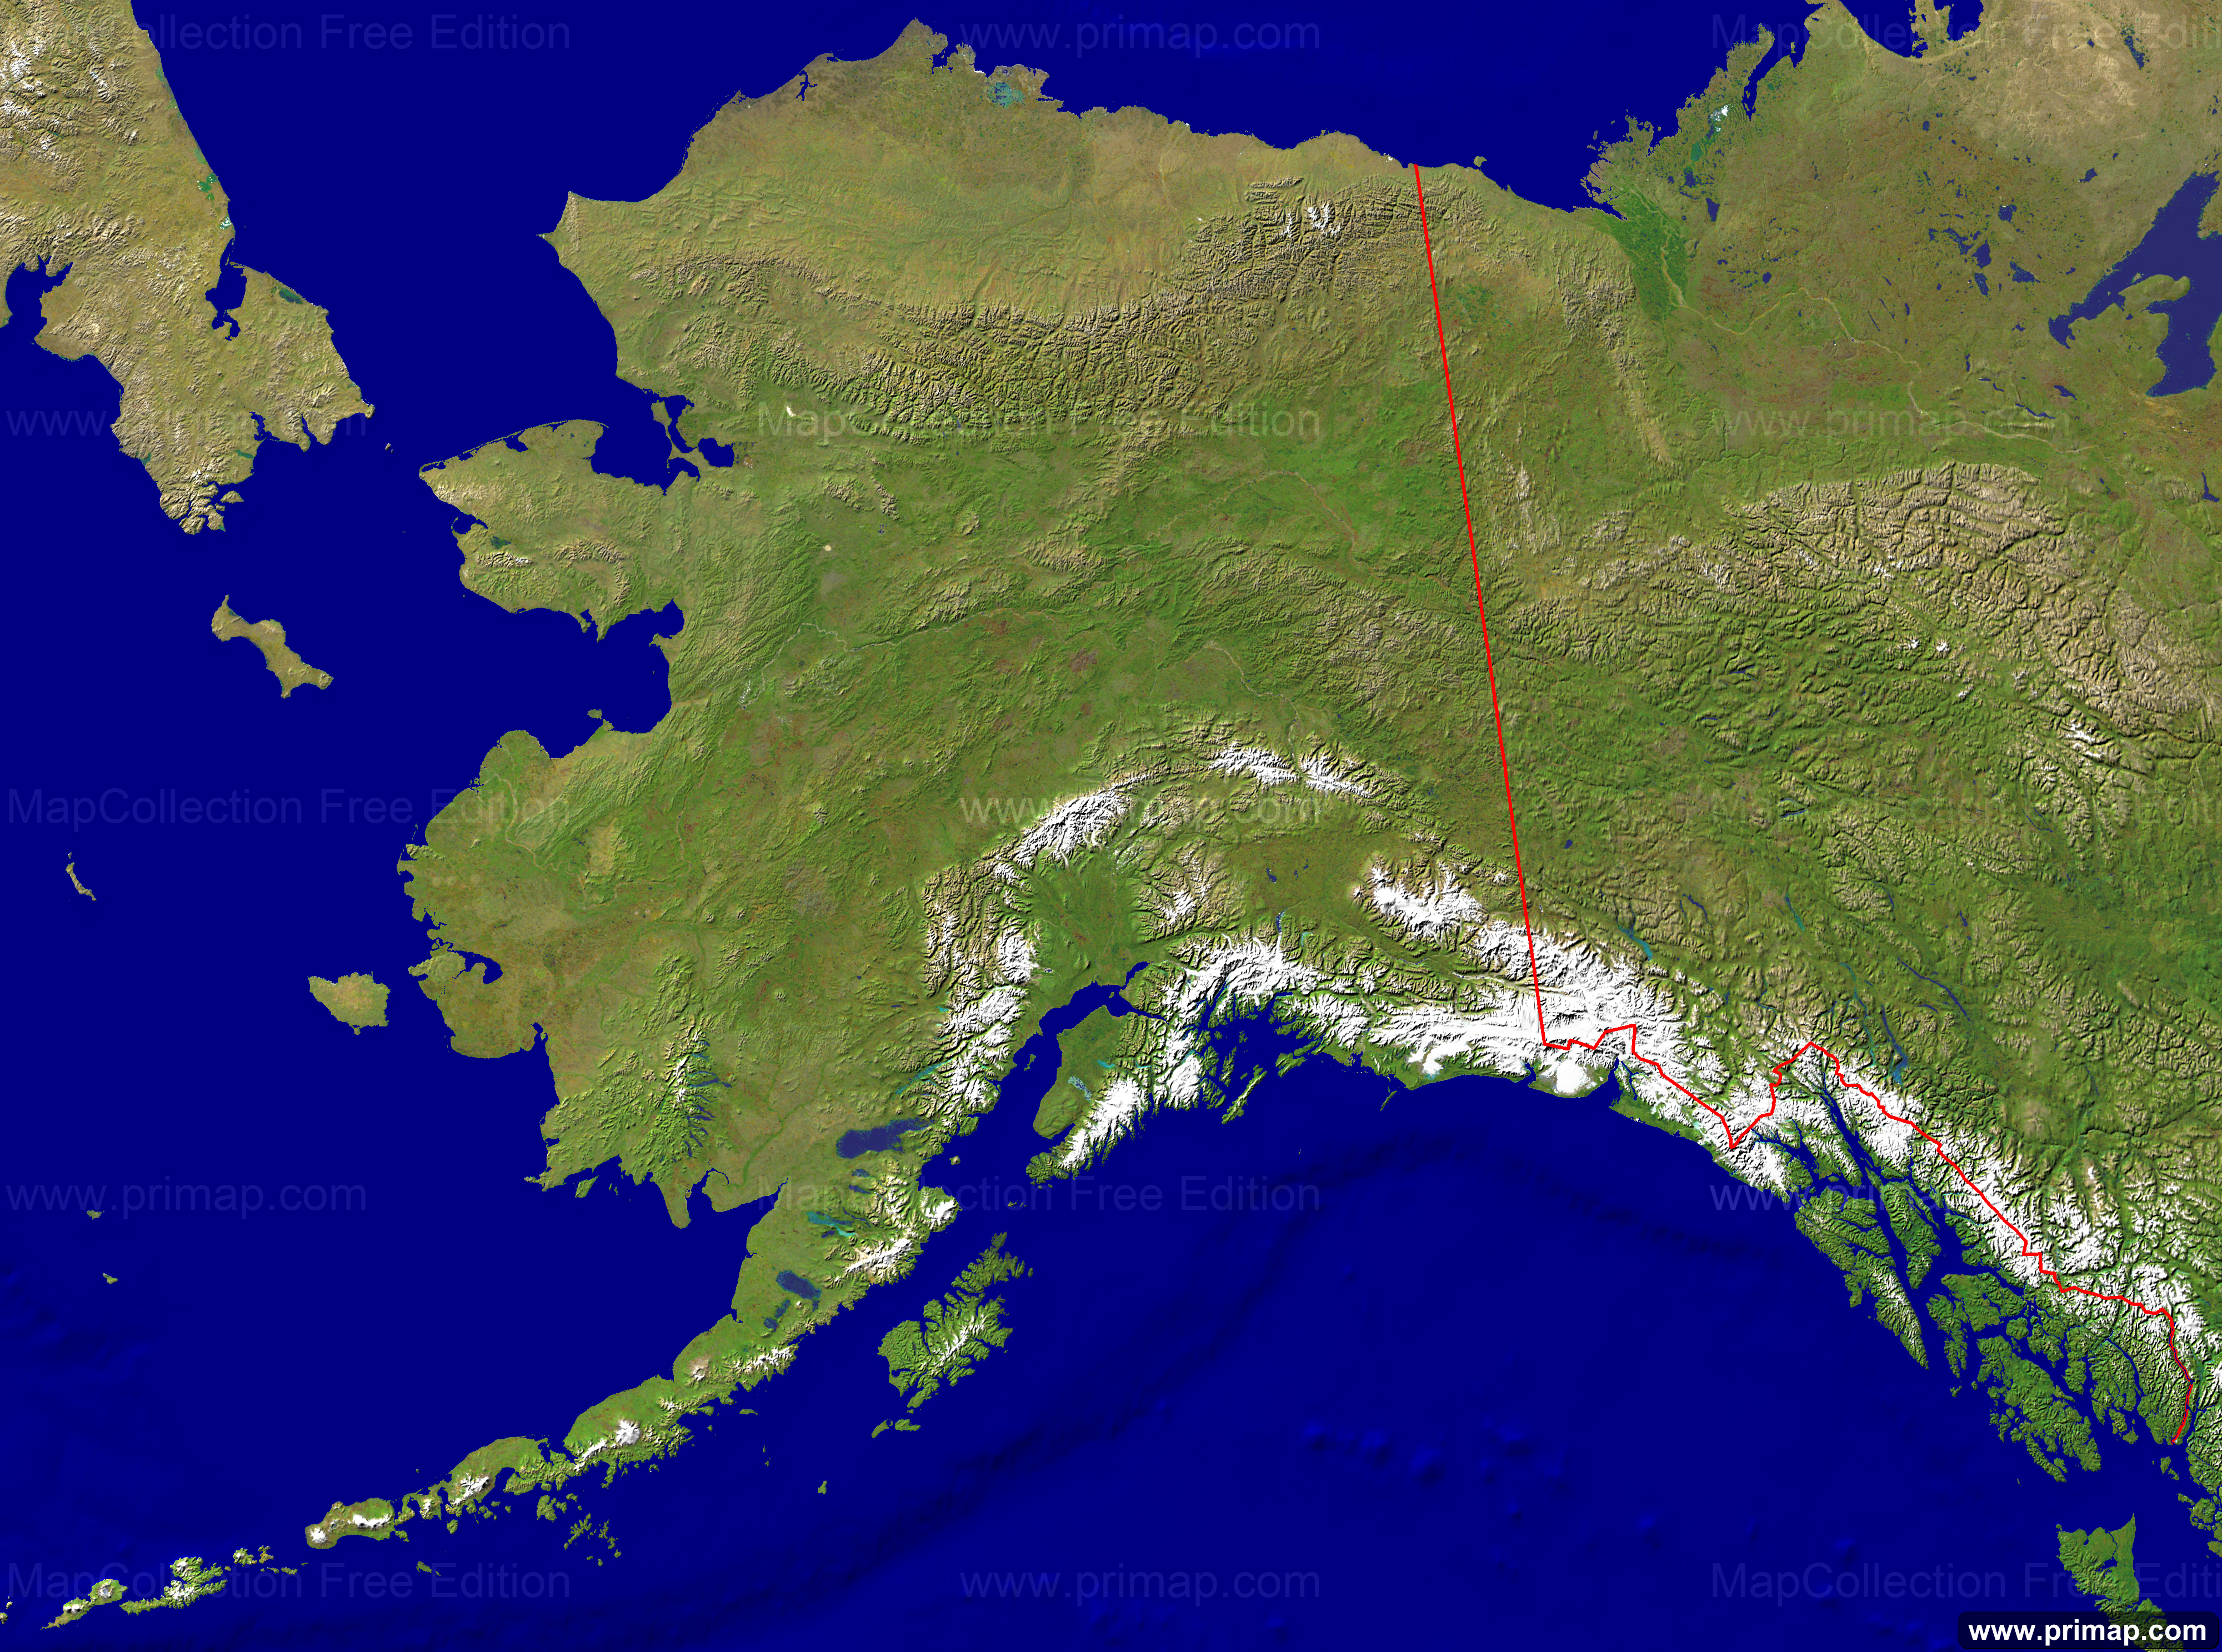 Primap National Maps - Alaska map in usa